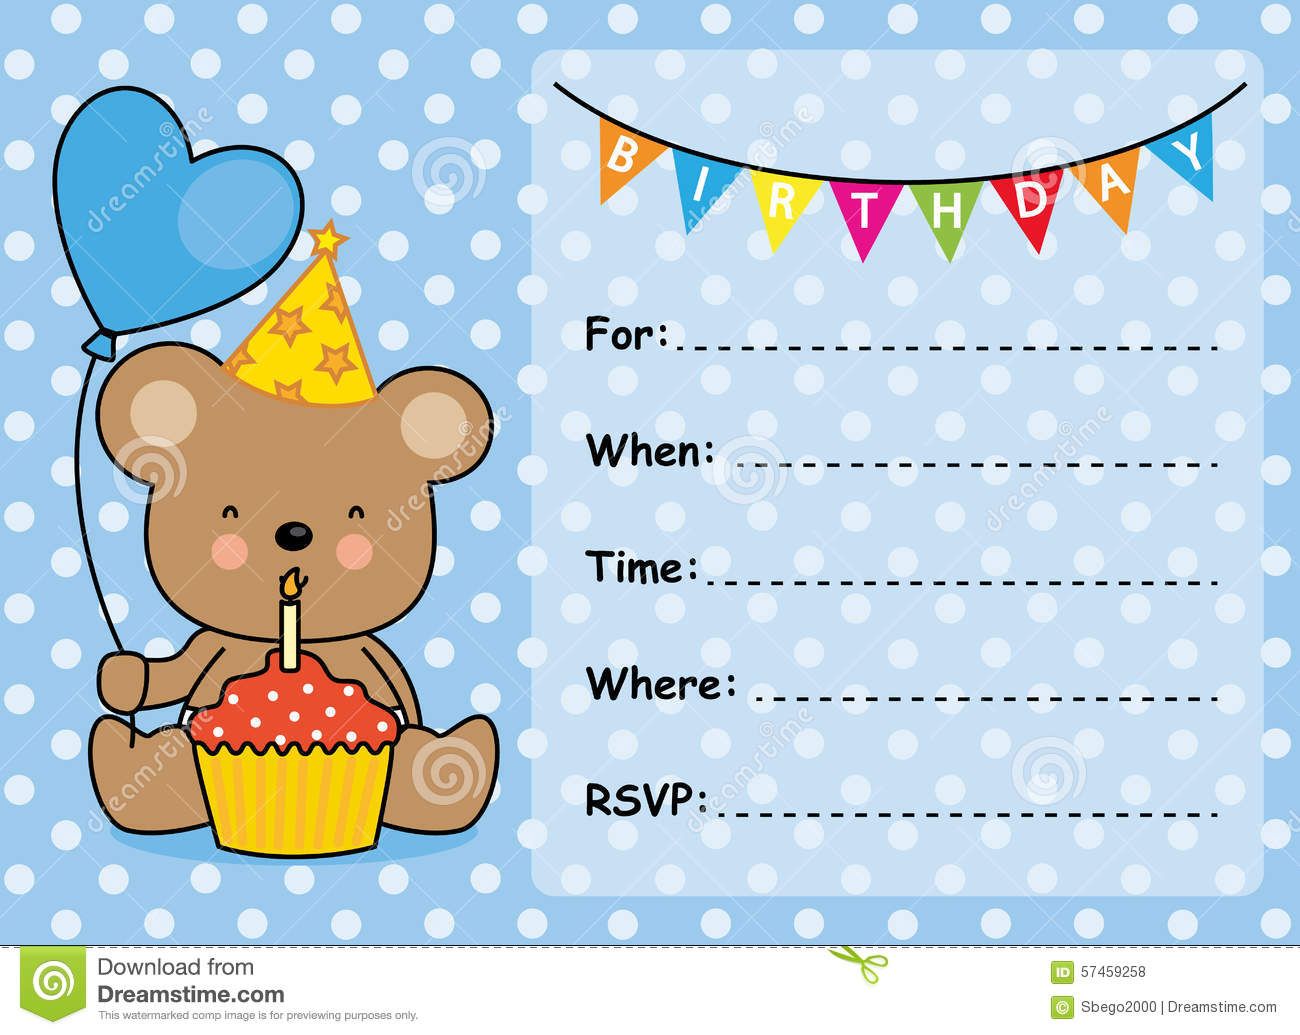 Invitation Card Birthday Boy Stock Vector - Illustration of love ...